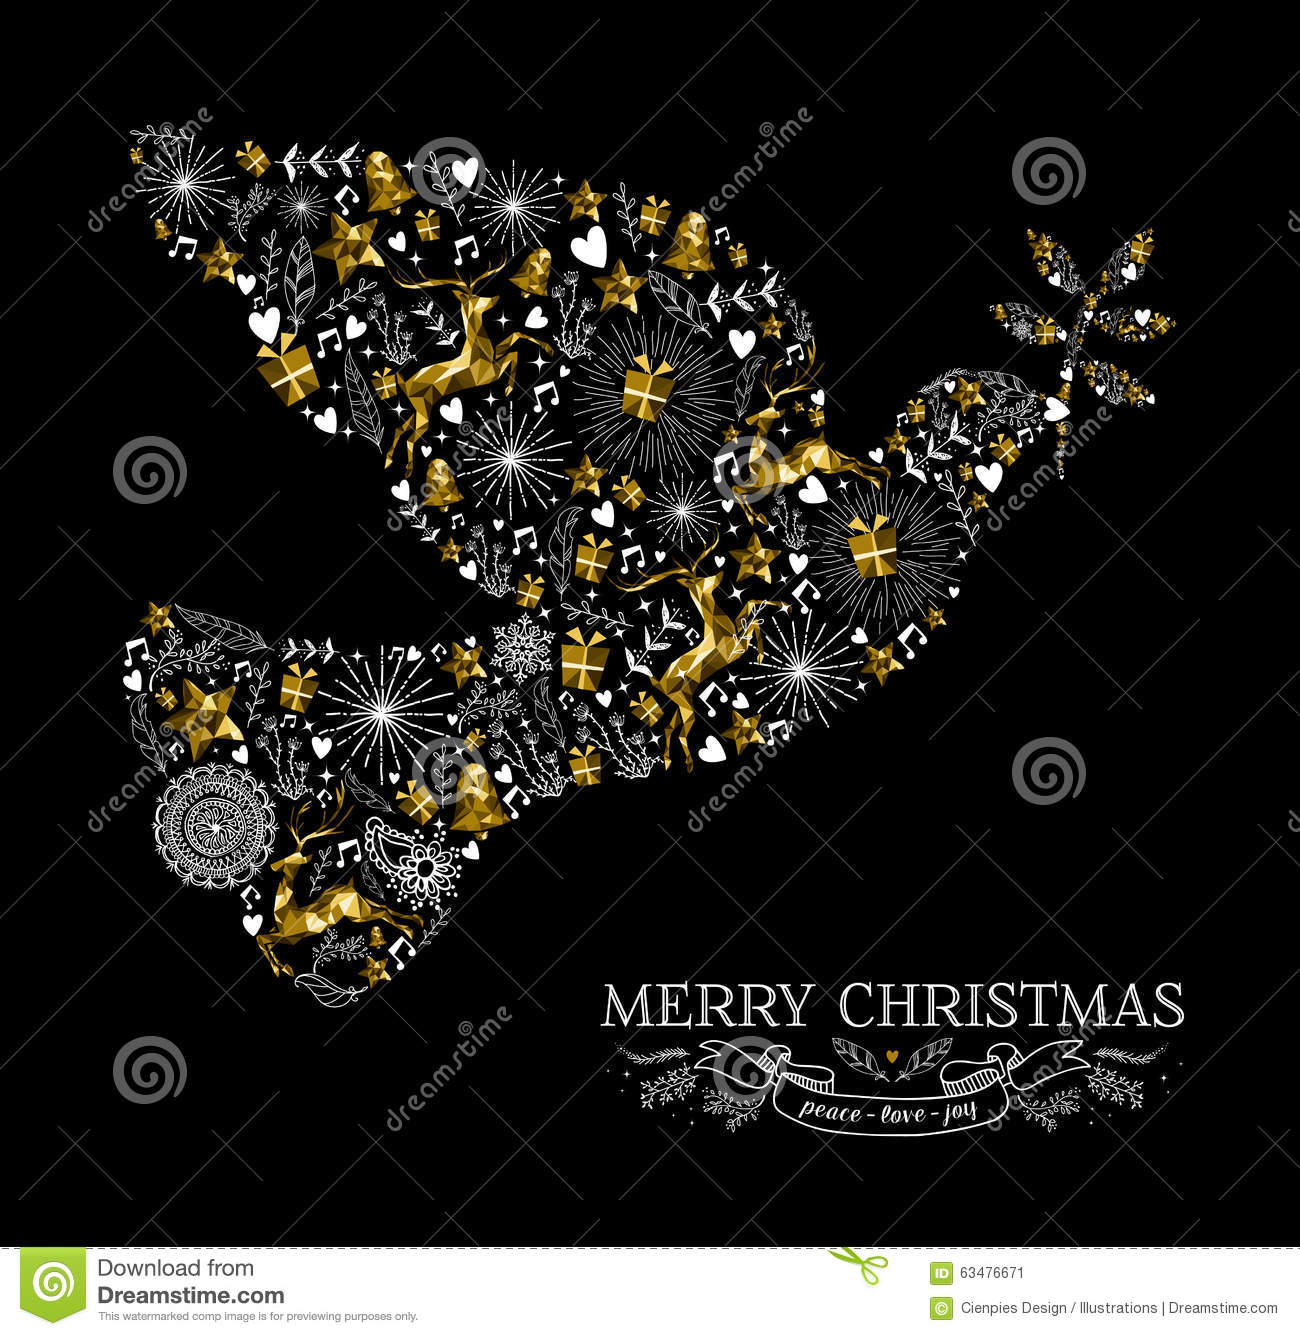 Merry Christmas Dove Bird Silhouette Gold Reindeer Stock